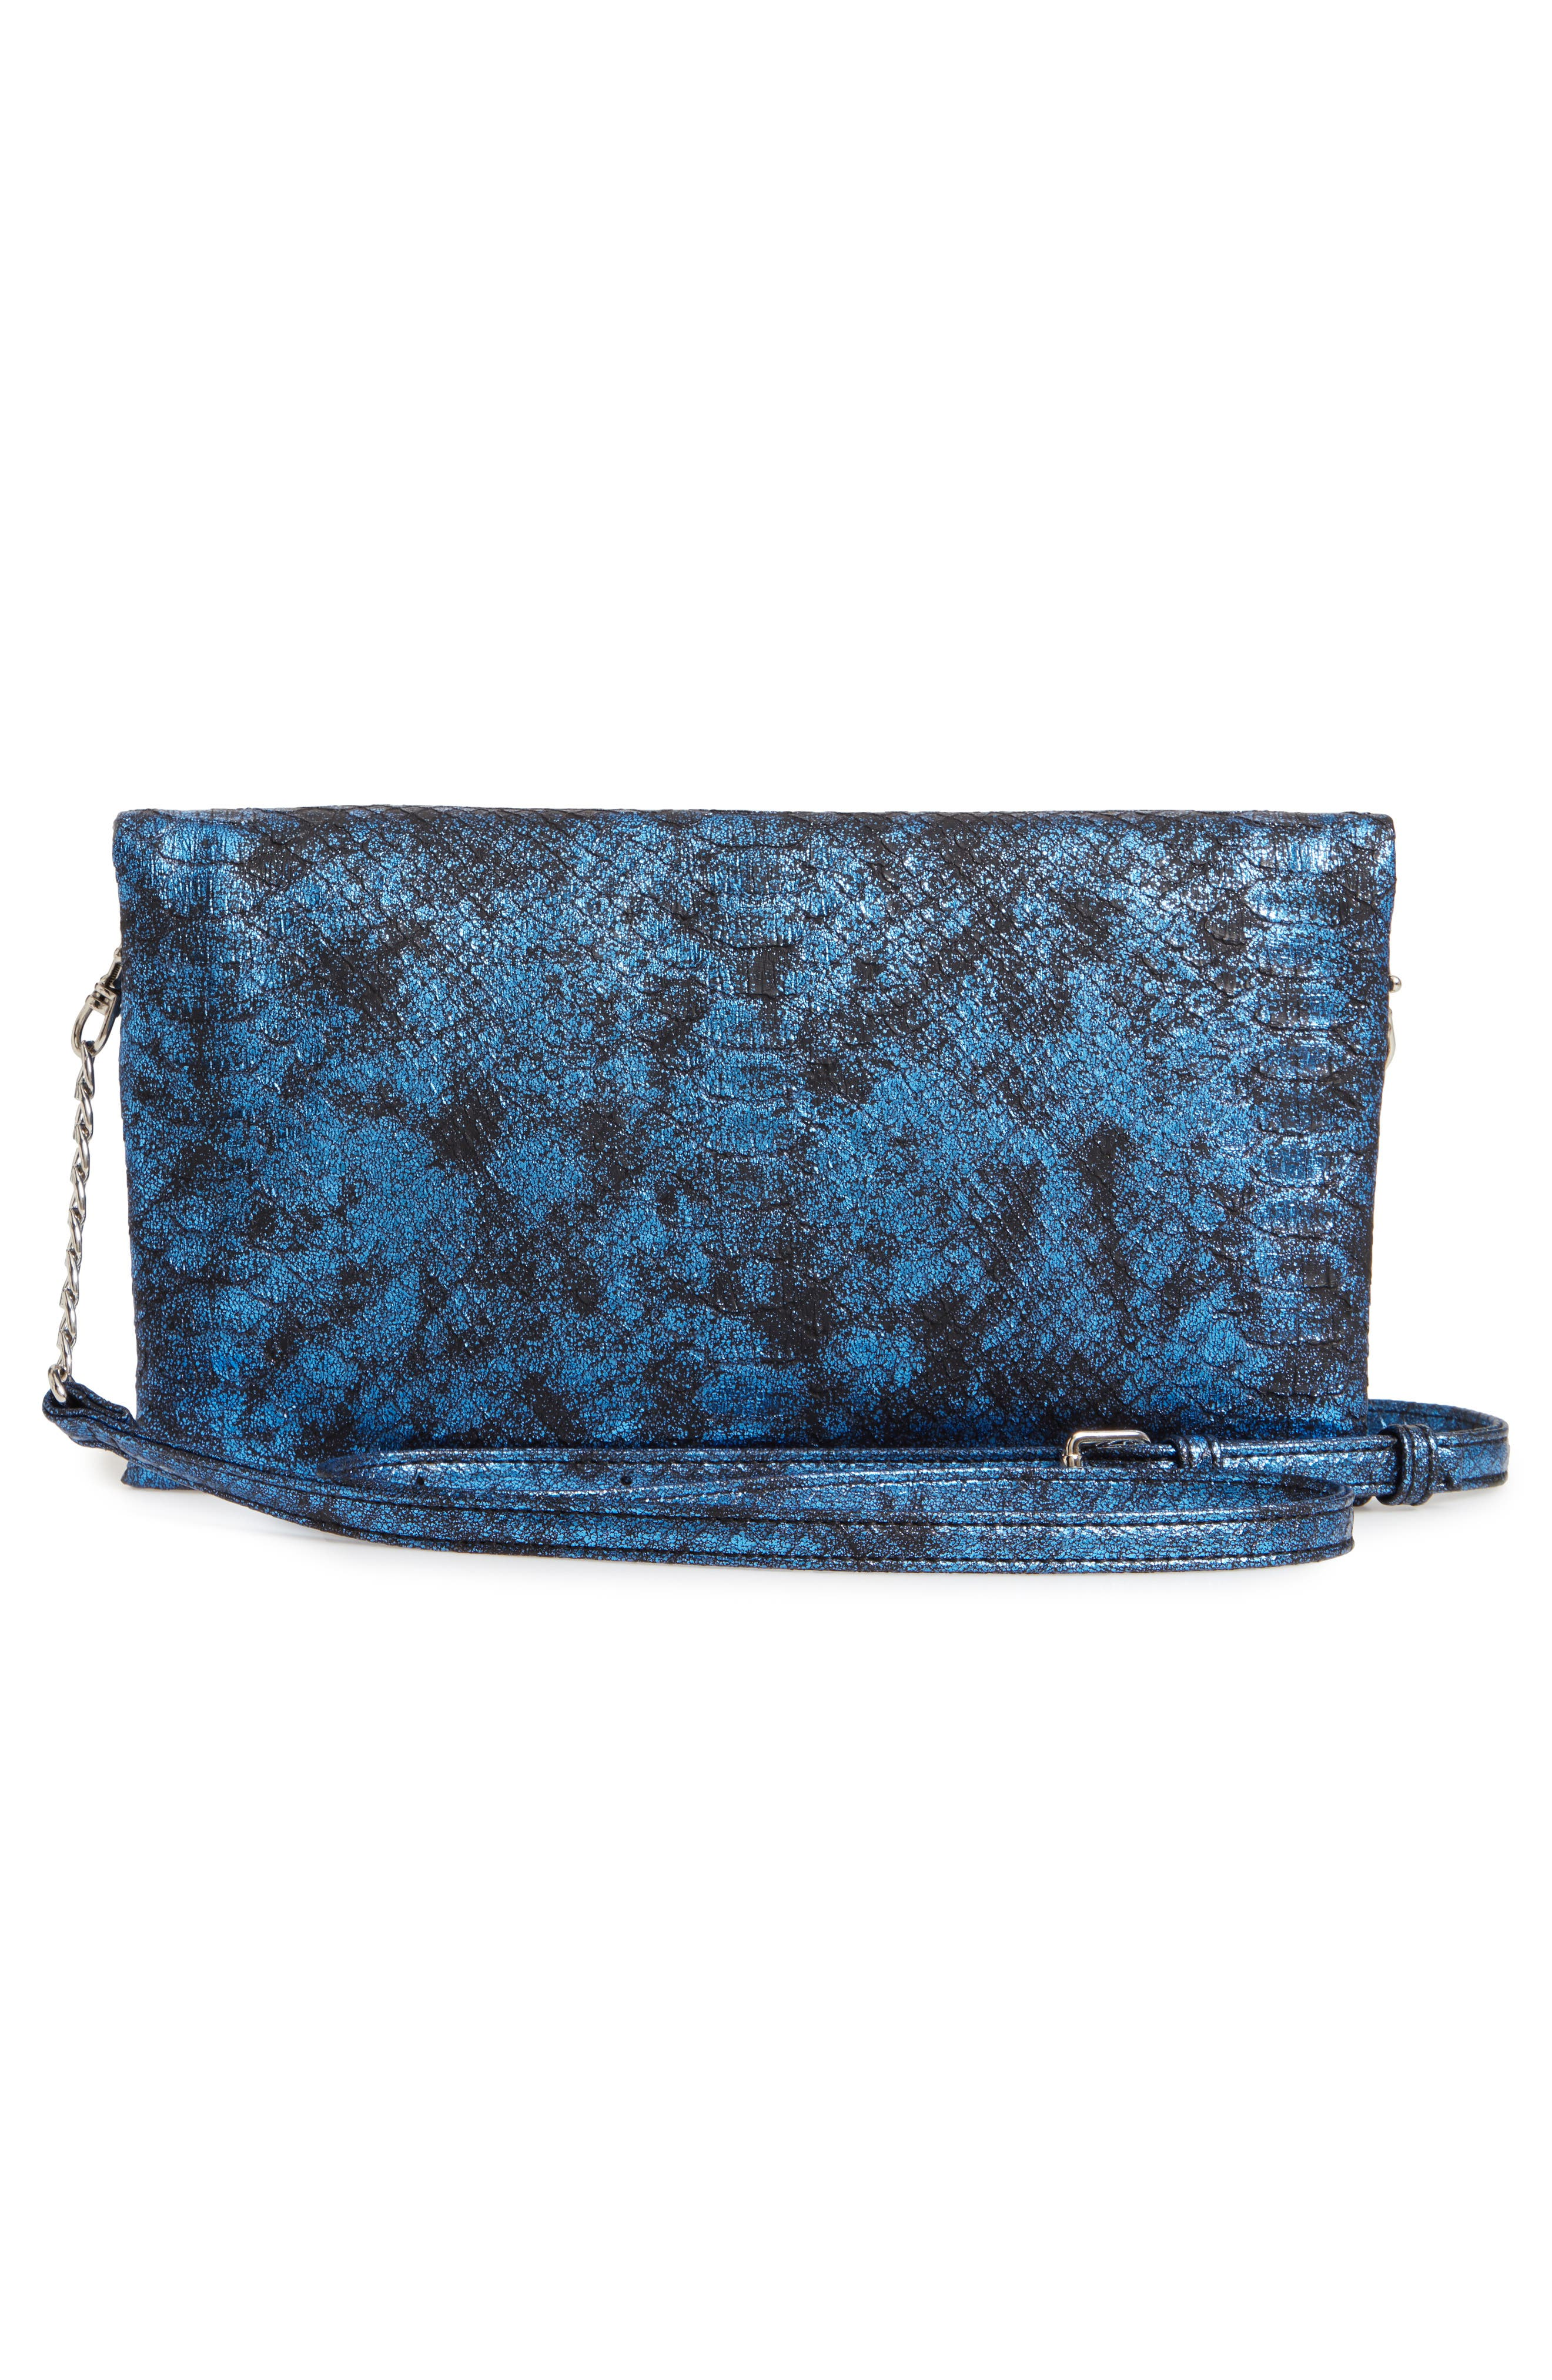 SOLE SOCIETY, Snake Embossed Faux Leather Clutch, Alternate thumbnail 4, color, 400